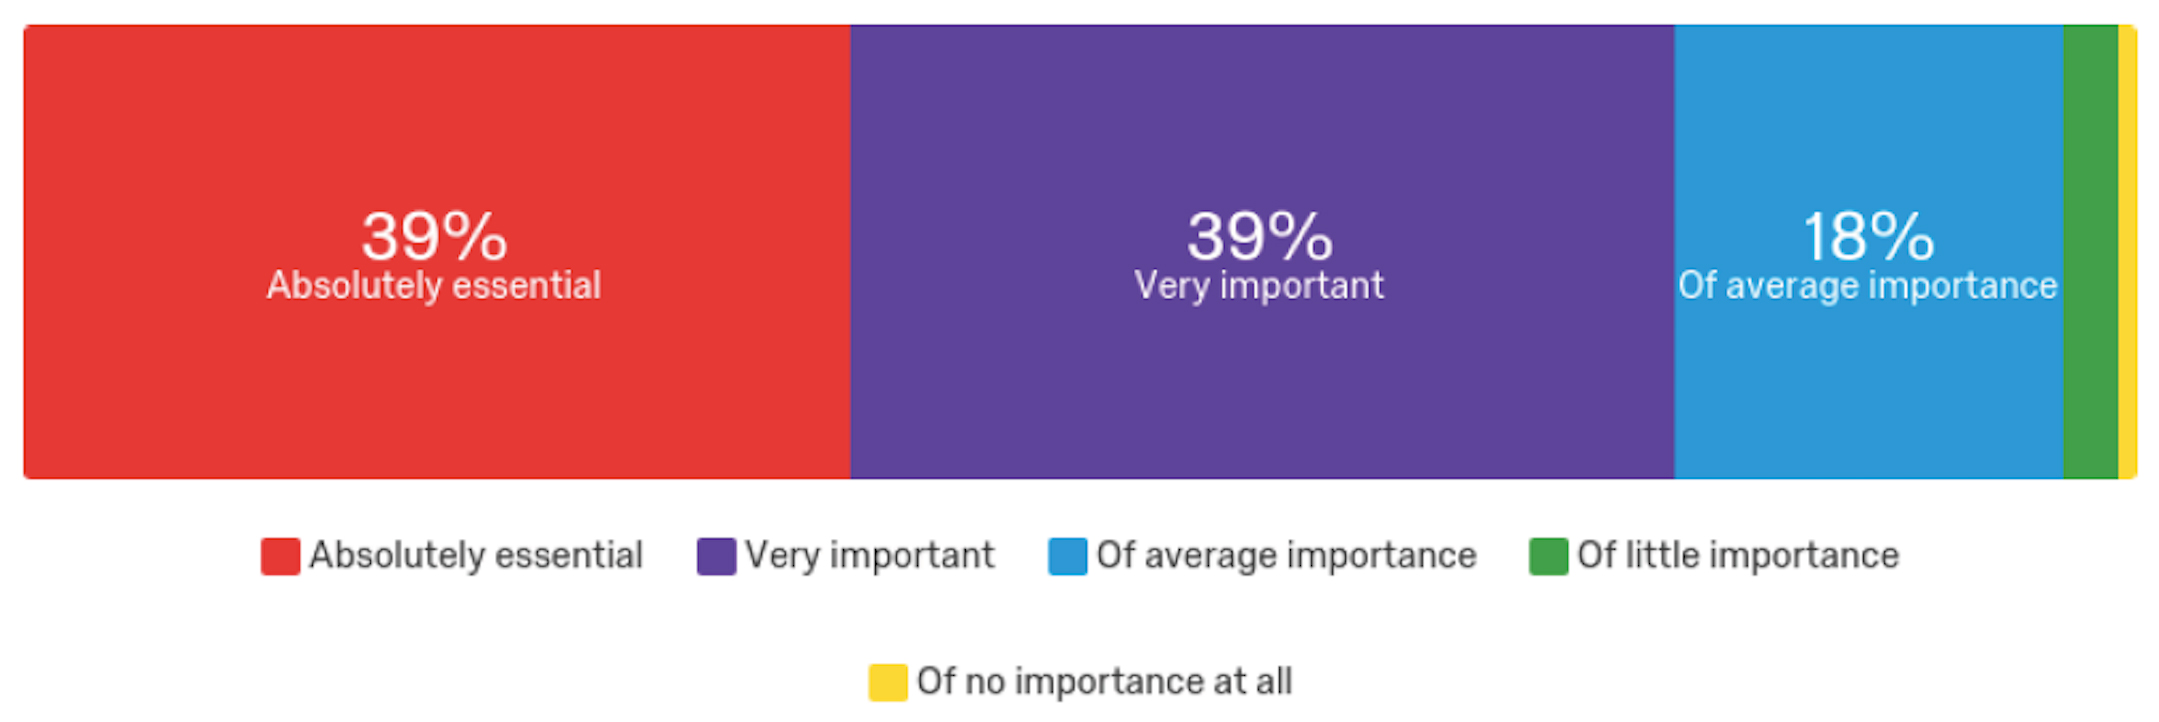 Bar chart: 39% Absolutely Essential, 39% Very Important, 18% Of Average Importance